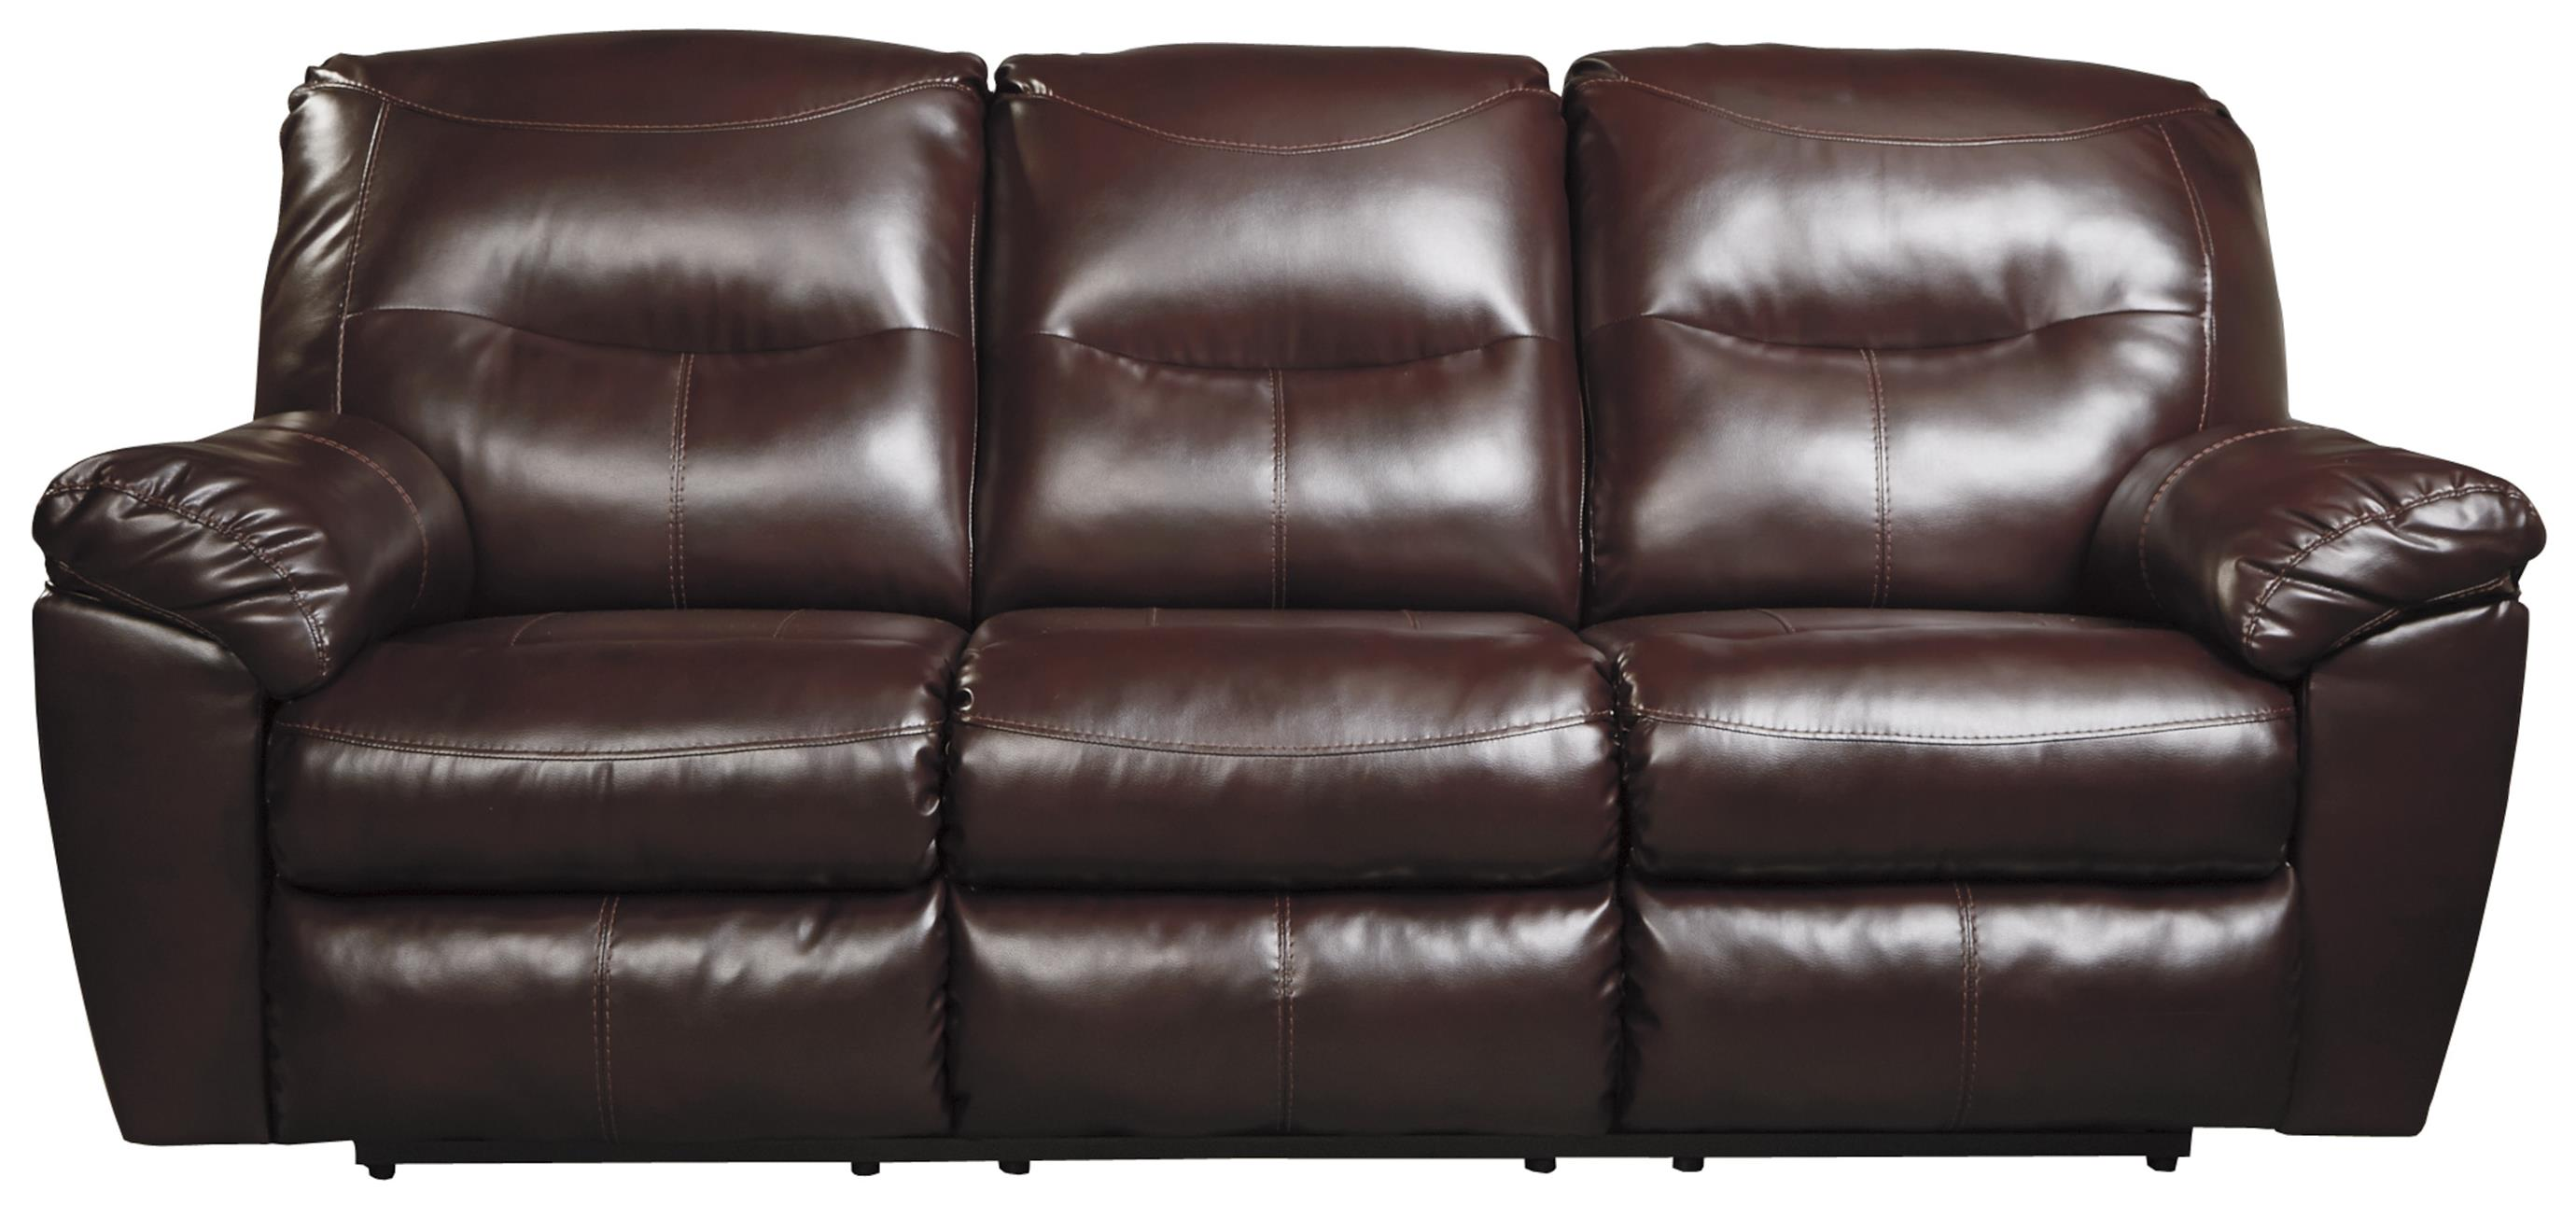 Faux Leather Contemporary Reclining Sofa By Signature Design By Ashley Wolf And Gardiner Wolf